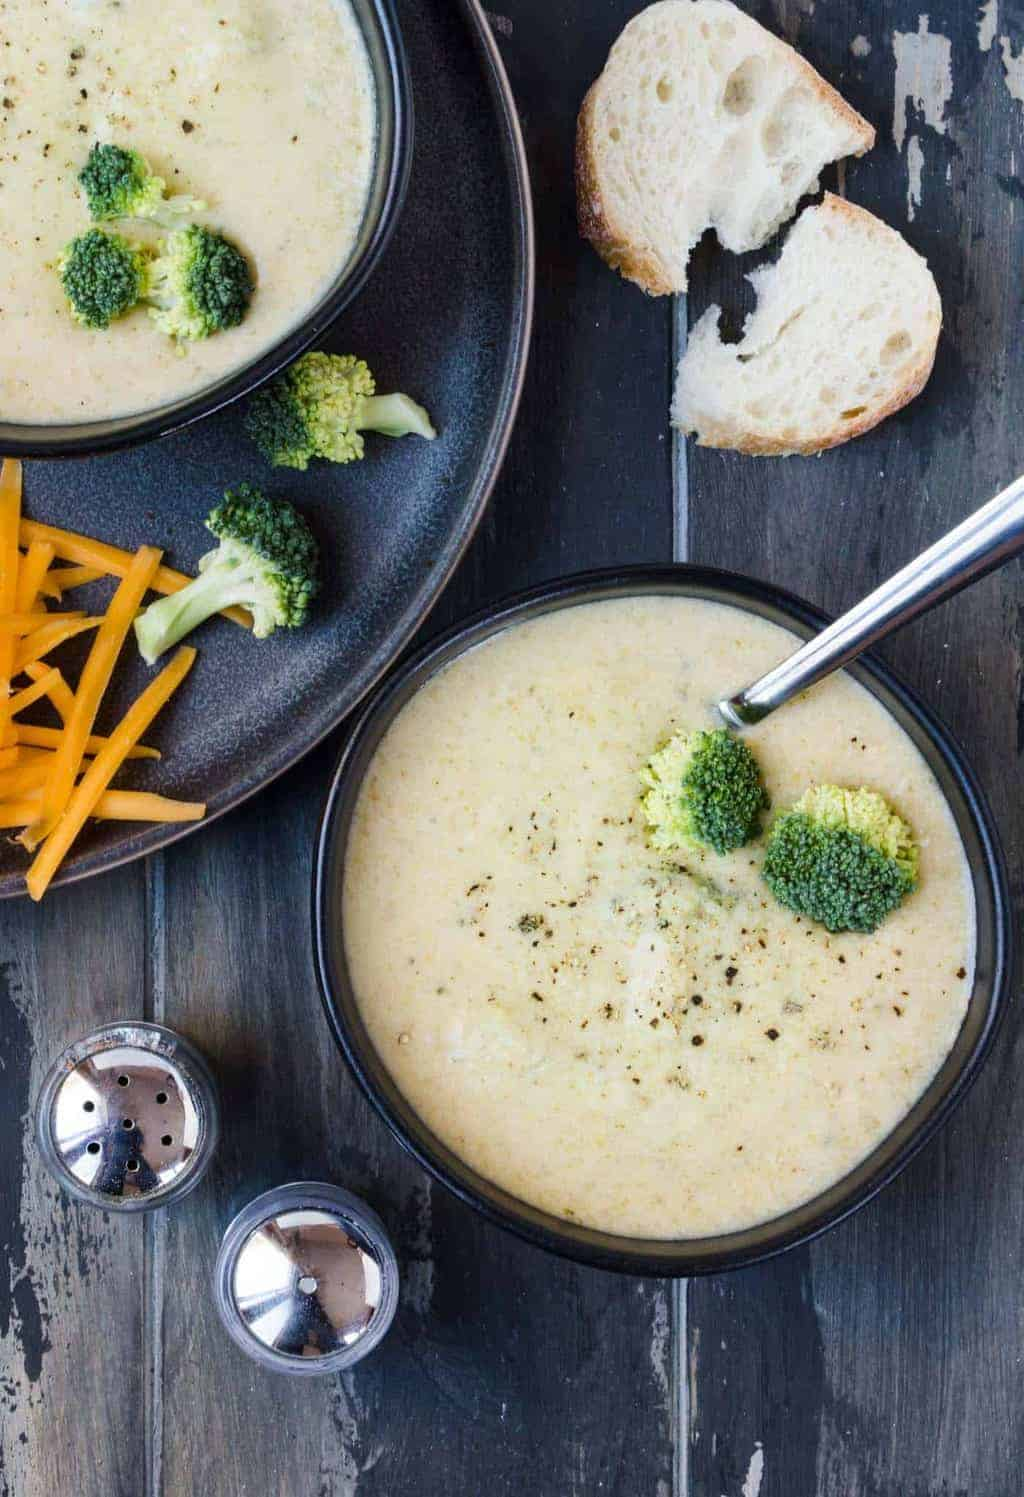 Top down shot of broccoli cheese soup in black bowls on a dark background with freshly grated pepper on top.